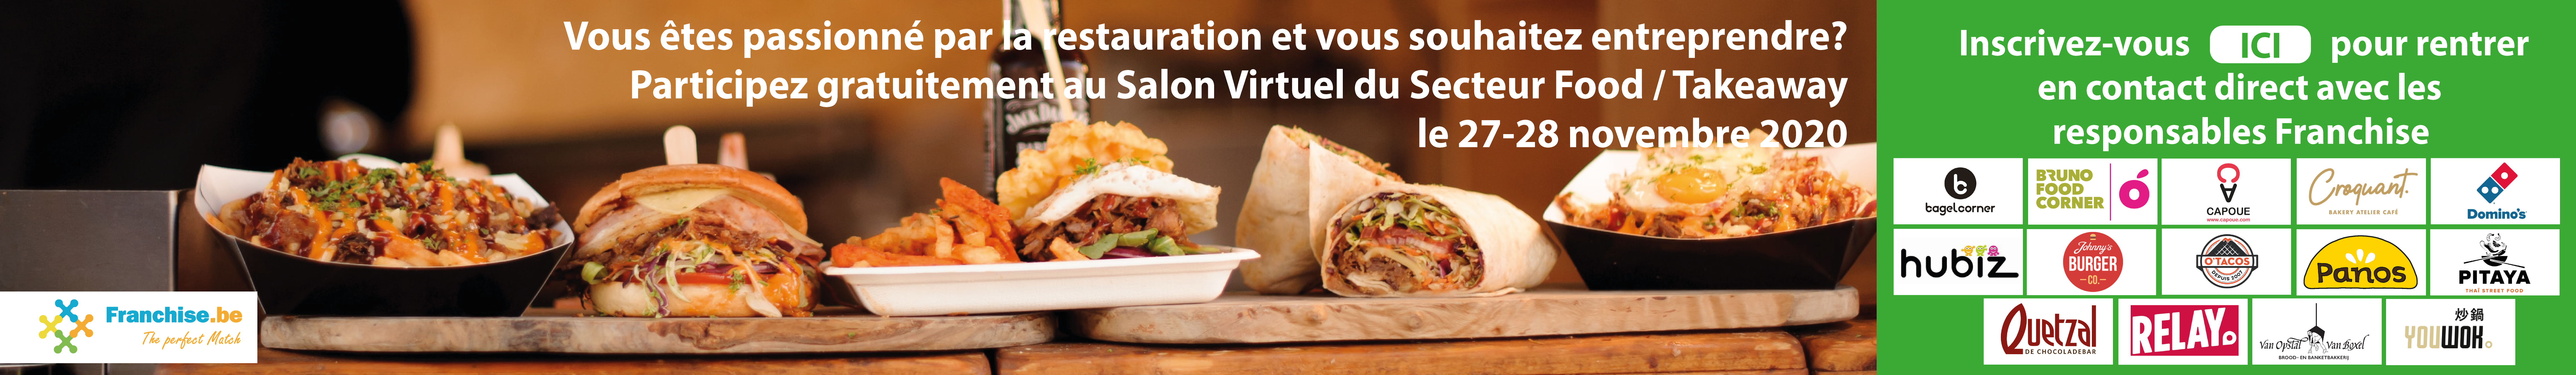 Participez gratuitement au Salon Virtuel de la Franchise Food & Take Away les 27 et 28 novembre 2020.